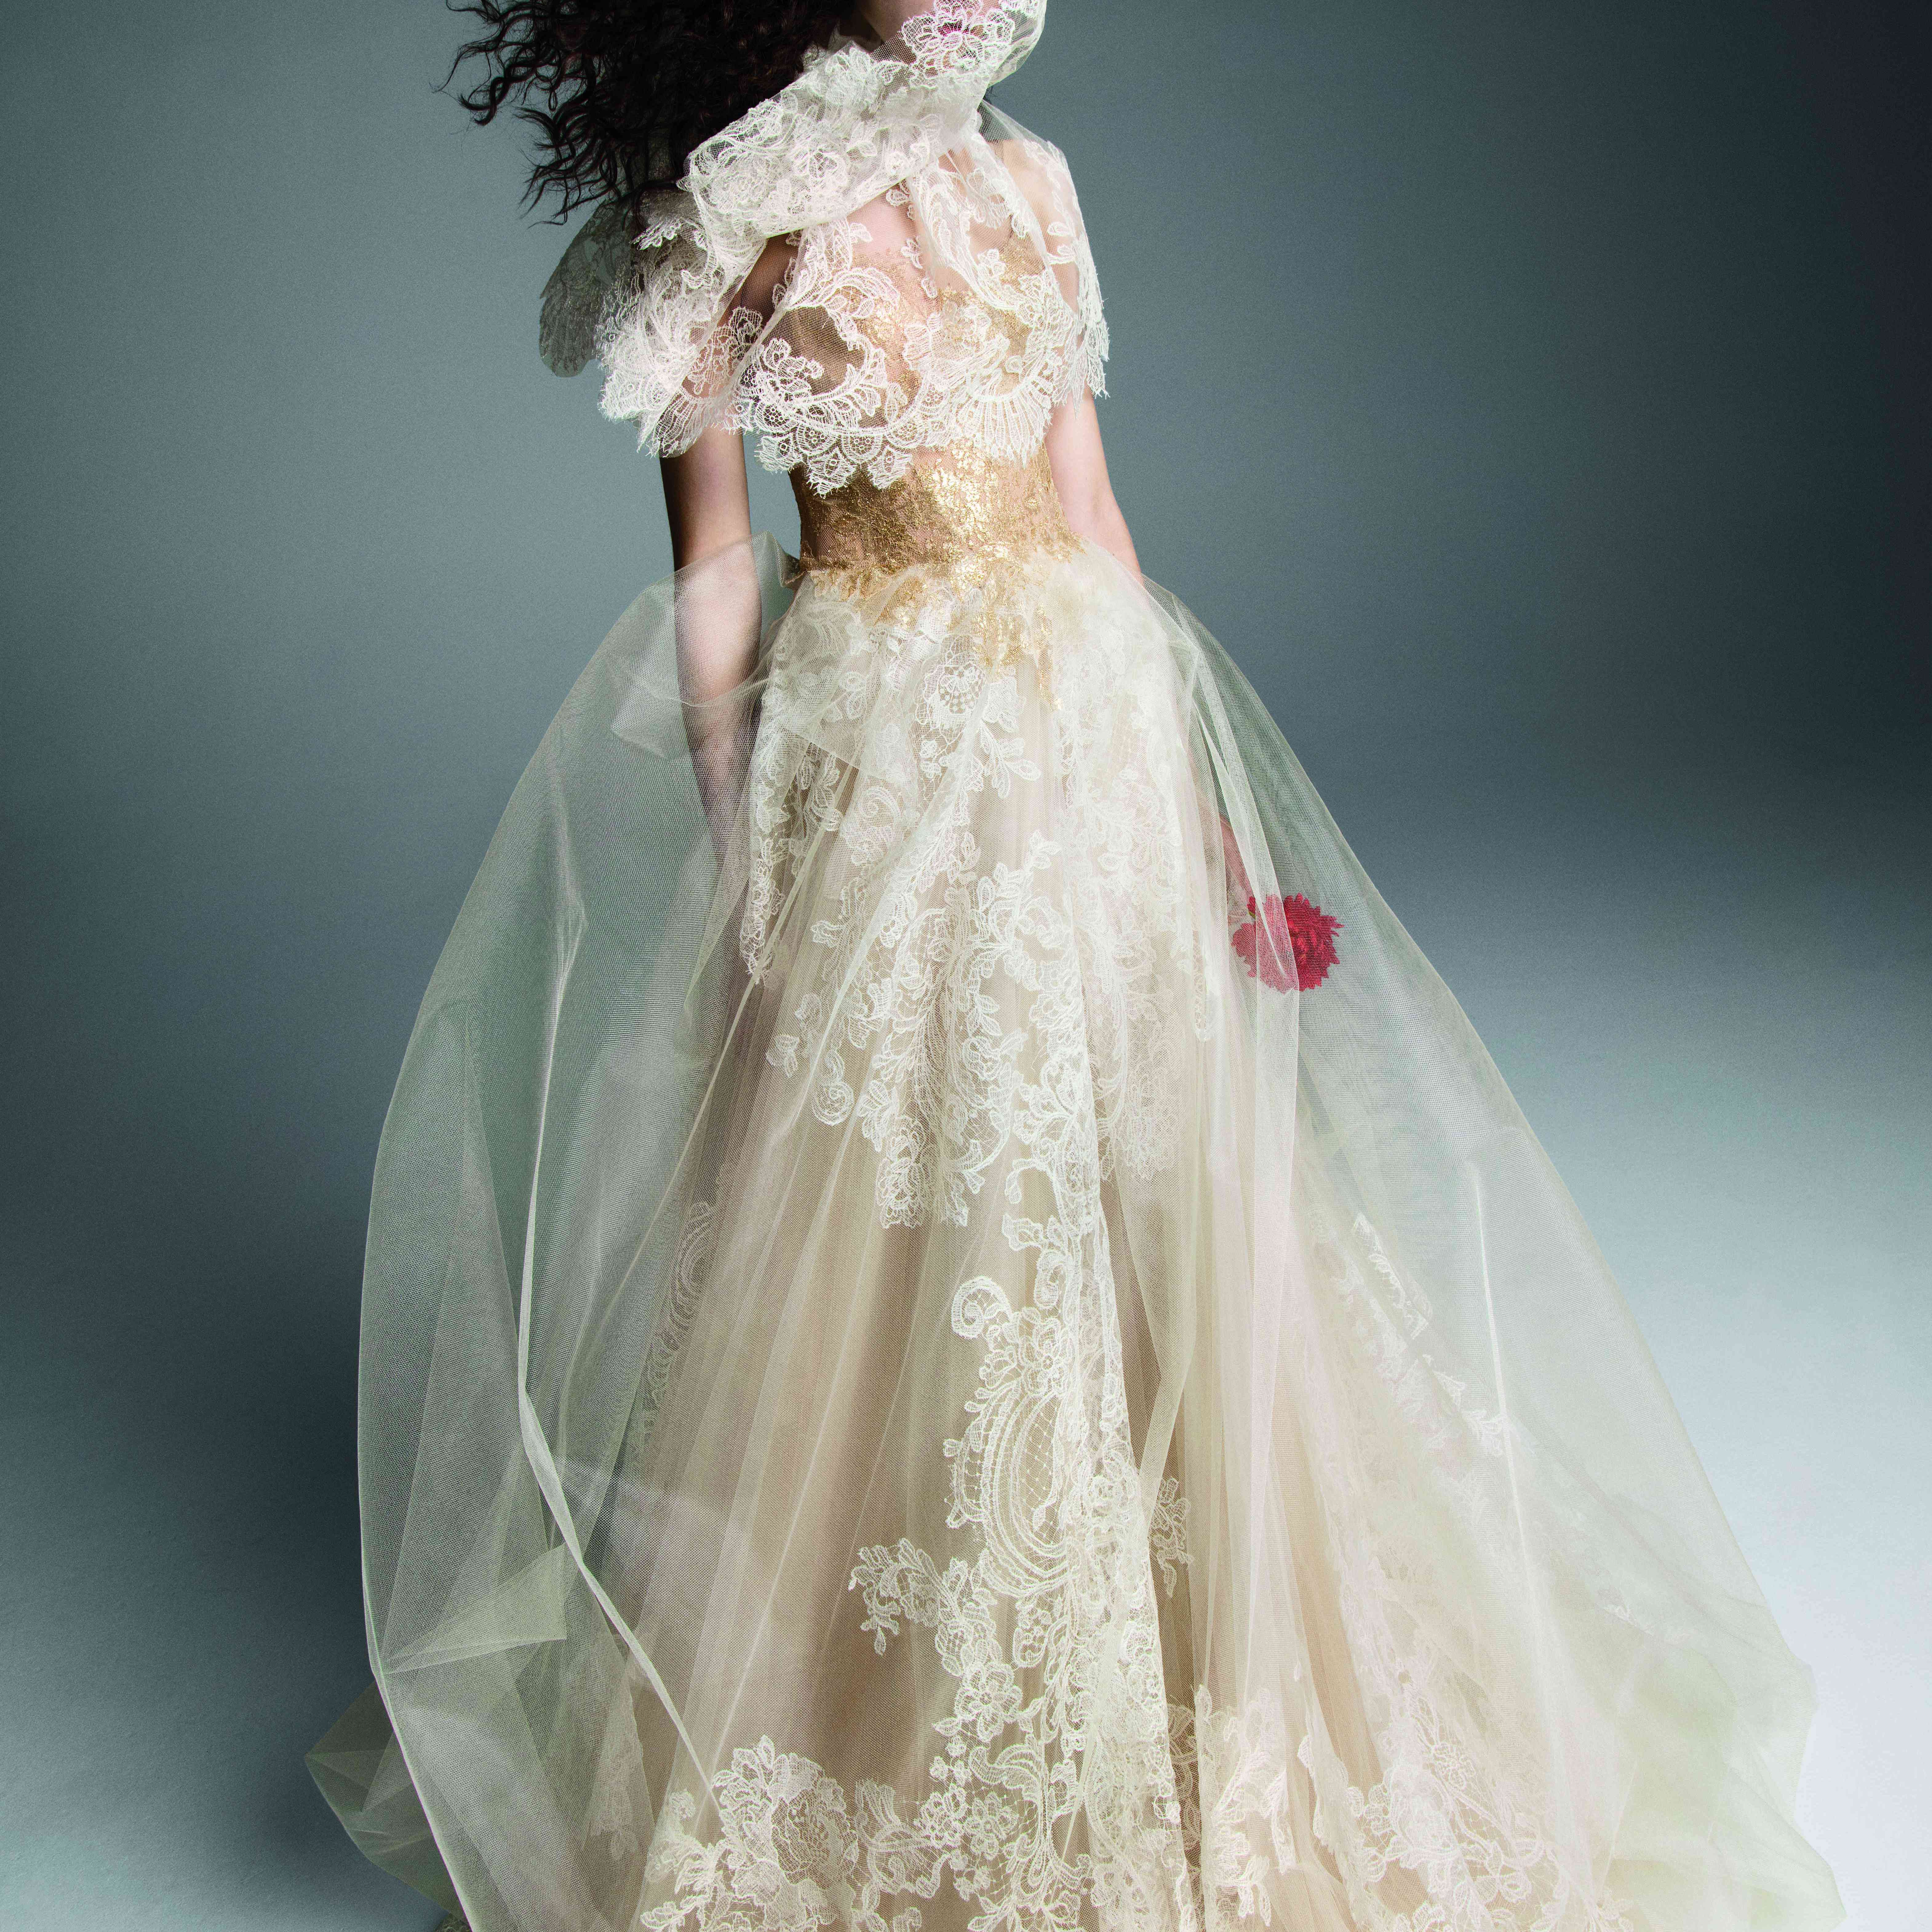 Model in nude and ivory tulle A-line gown with gold lace accents on the bodice and white lace along the skirt